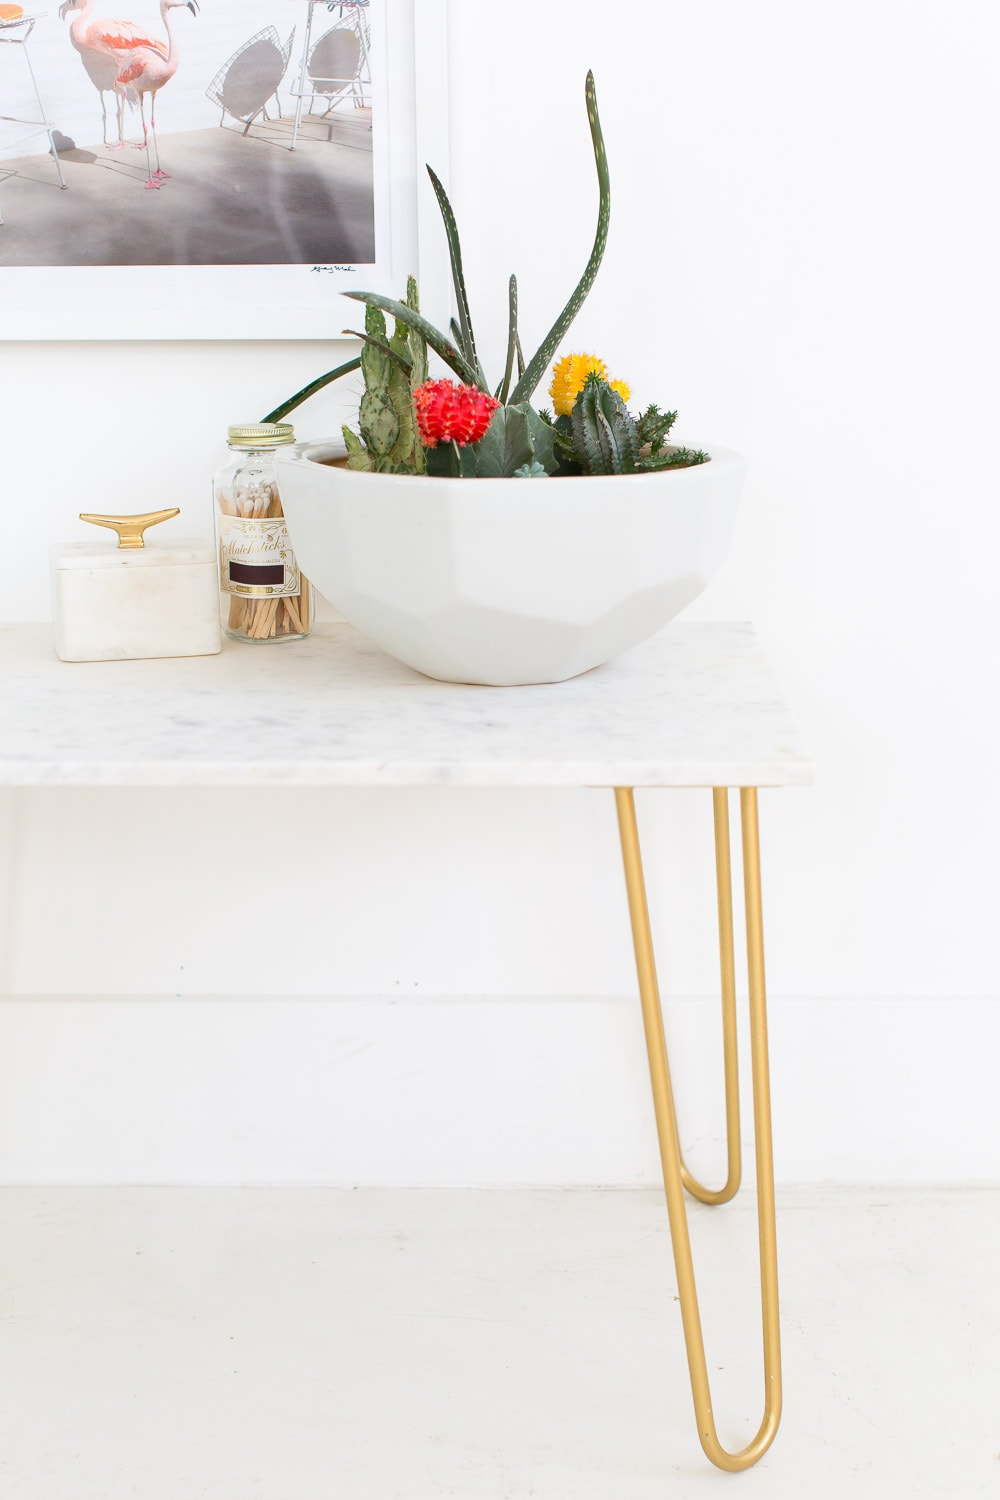 DIY marble and gold accent side table - sugar and cloth - home decor ideas  by Houston Blogger Ashley Rose #homedecor #decor #gold #diy #doityourself #tabletop #marble #sidetable #table